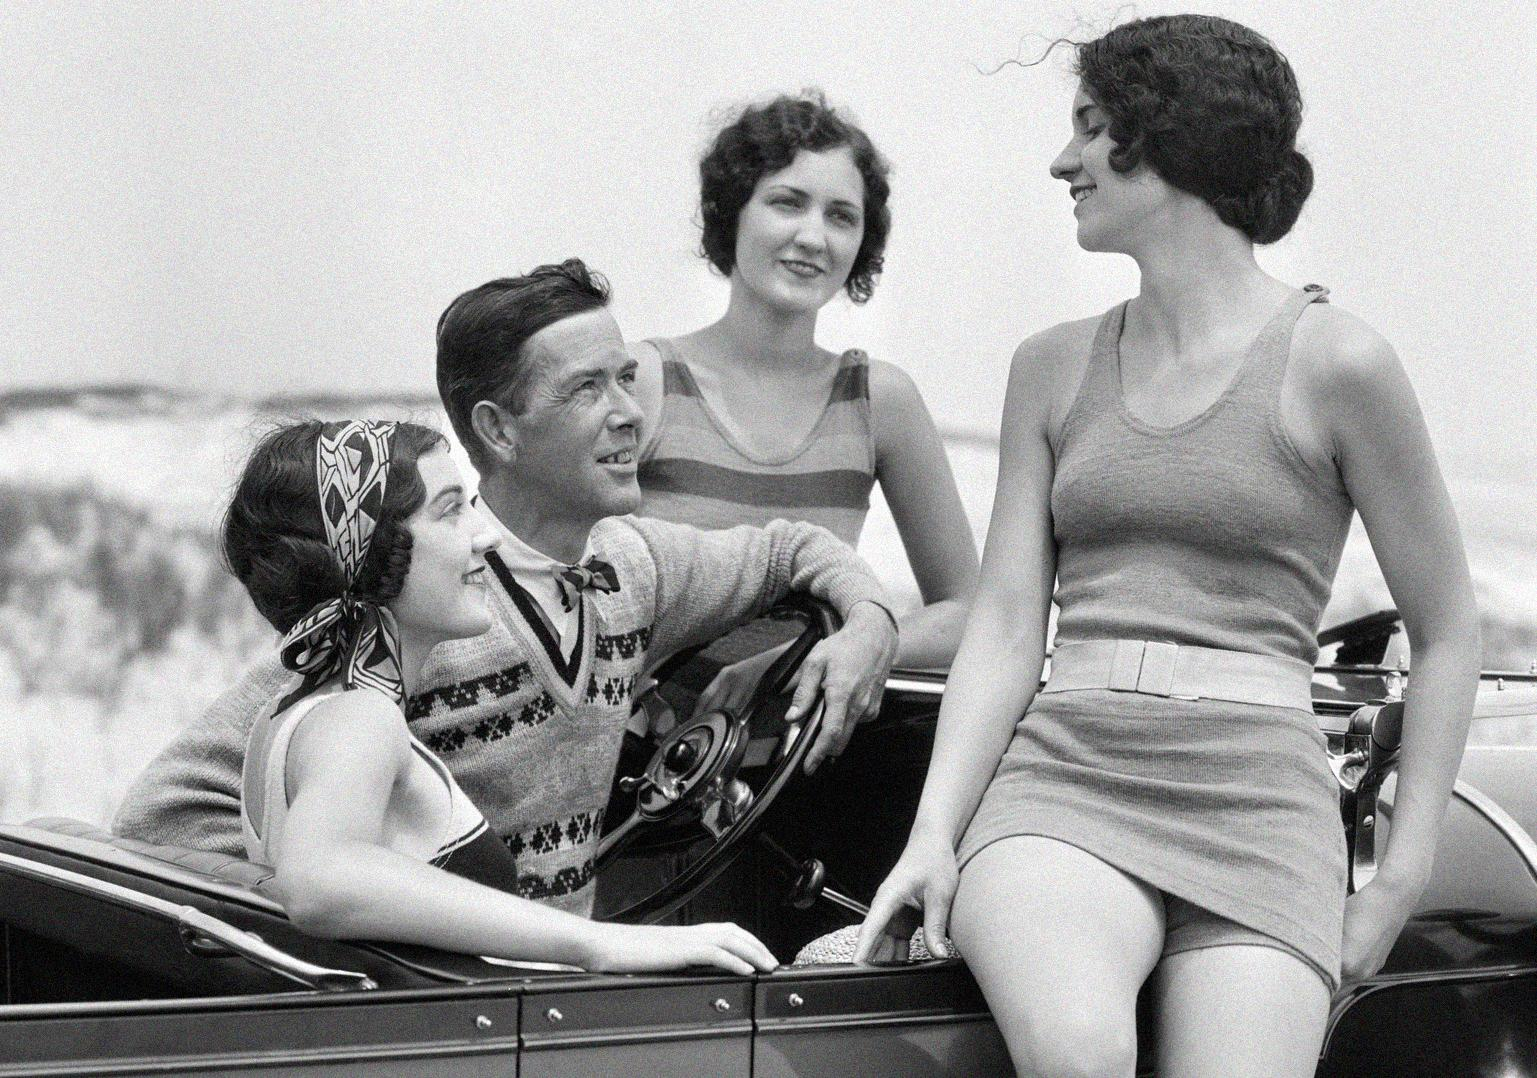 Man at steering wheel of convertible car, surrounded by three young women